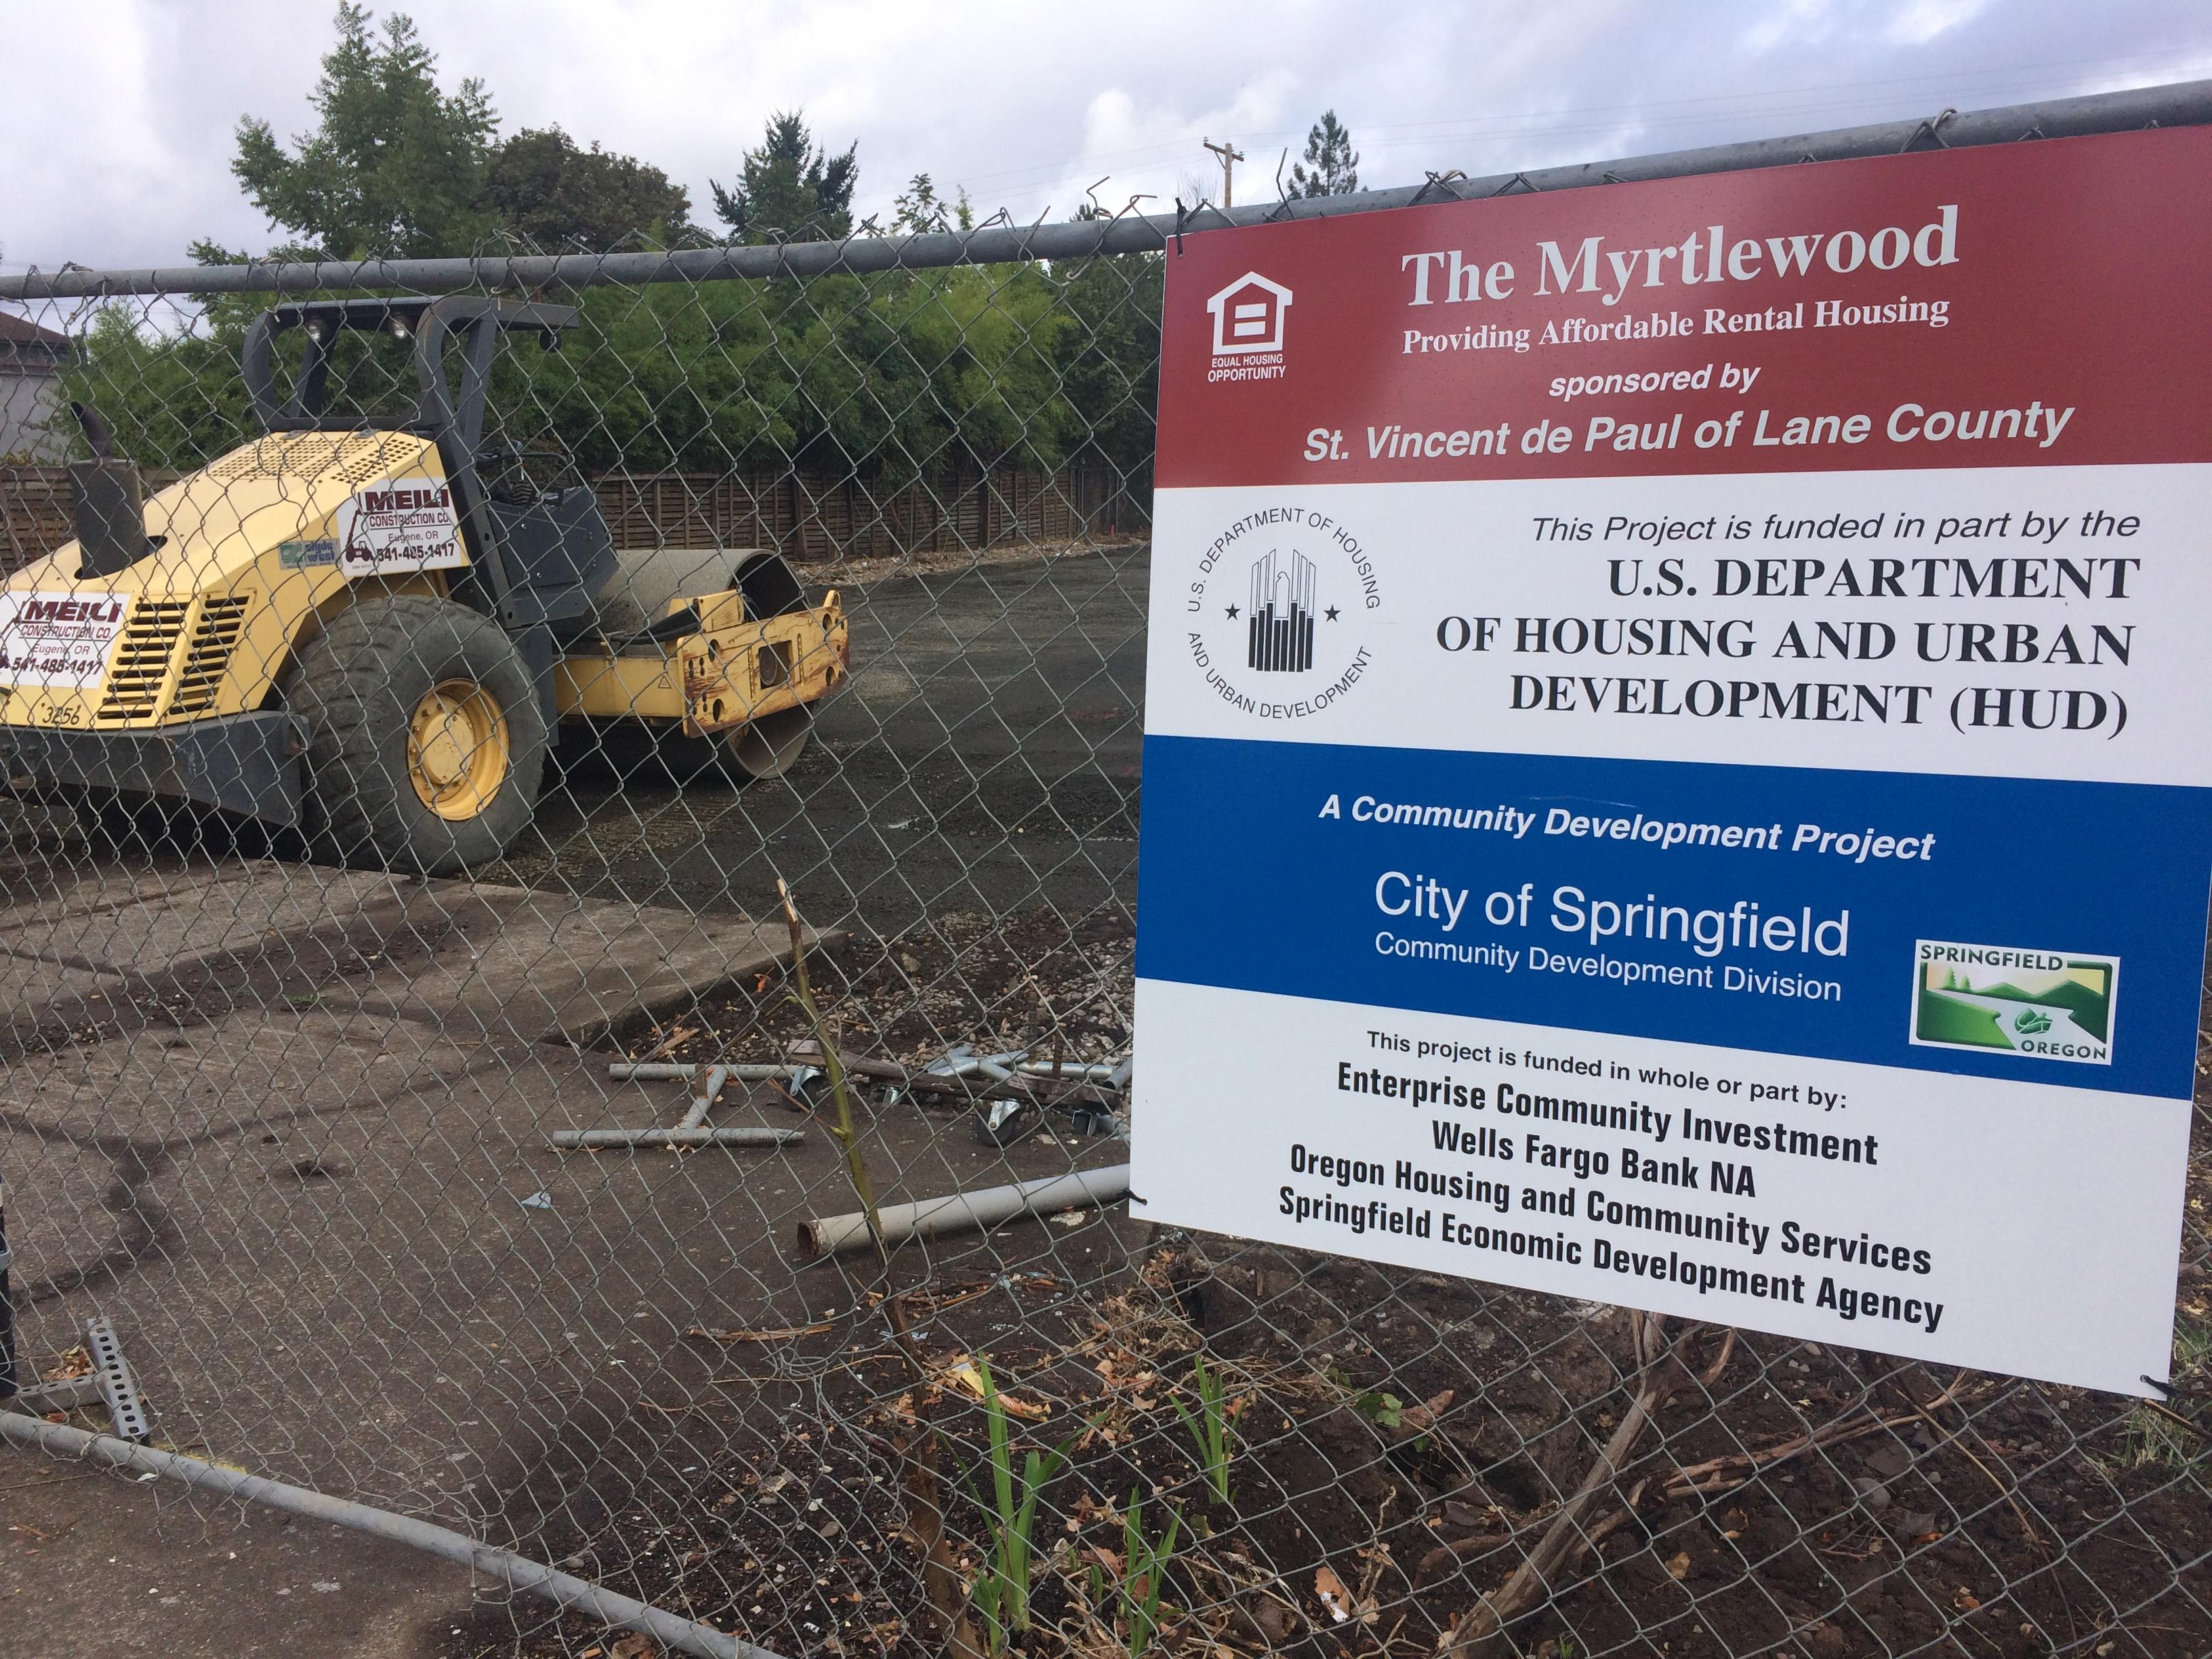 St. Vincent De Paul introduces Myrtlewood, an affordable housing project in Springfield